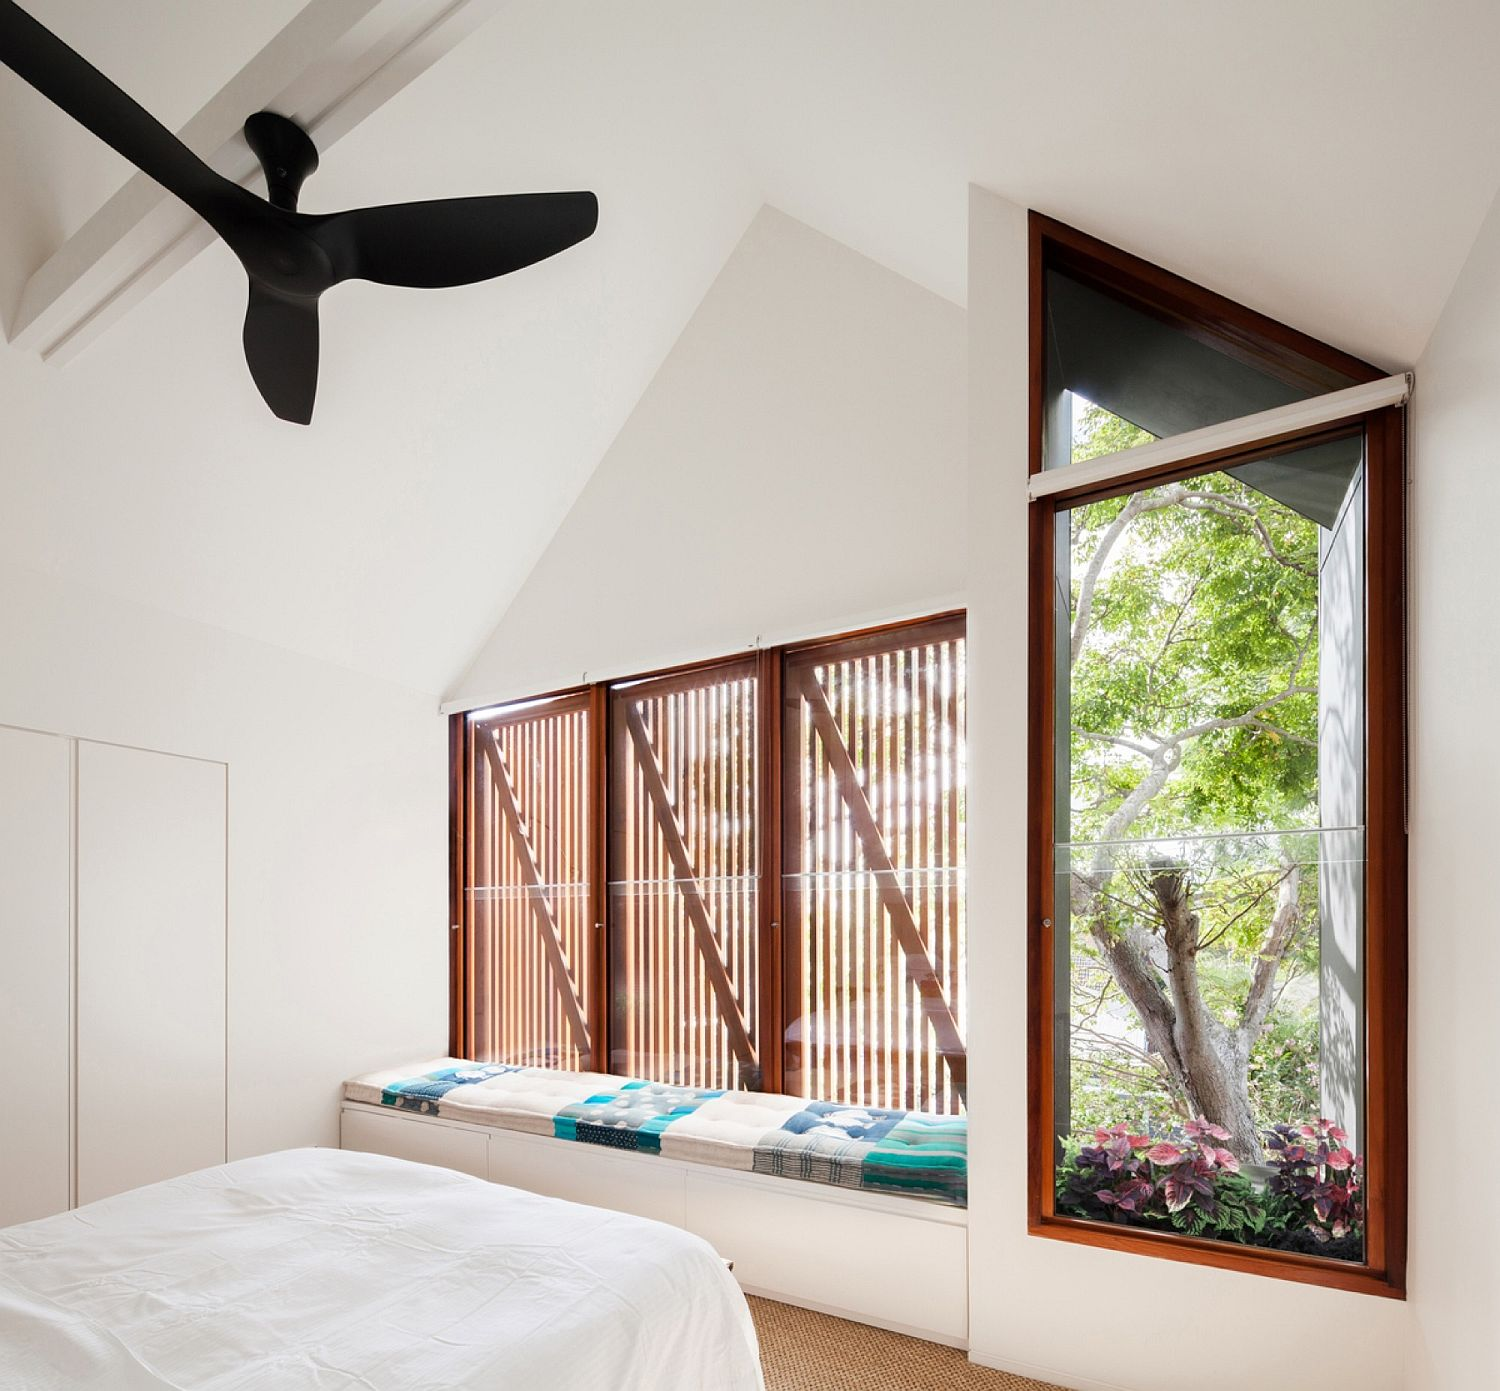 Modern bedroom in white withwindow seat and wooden slat windows